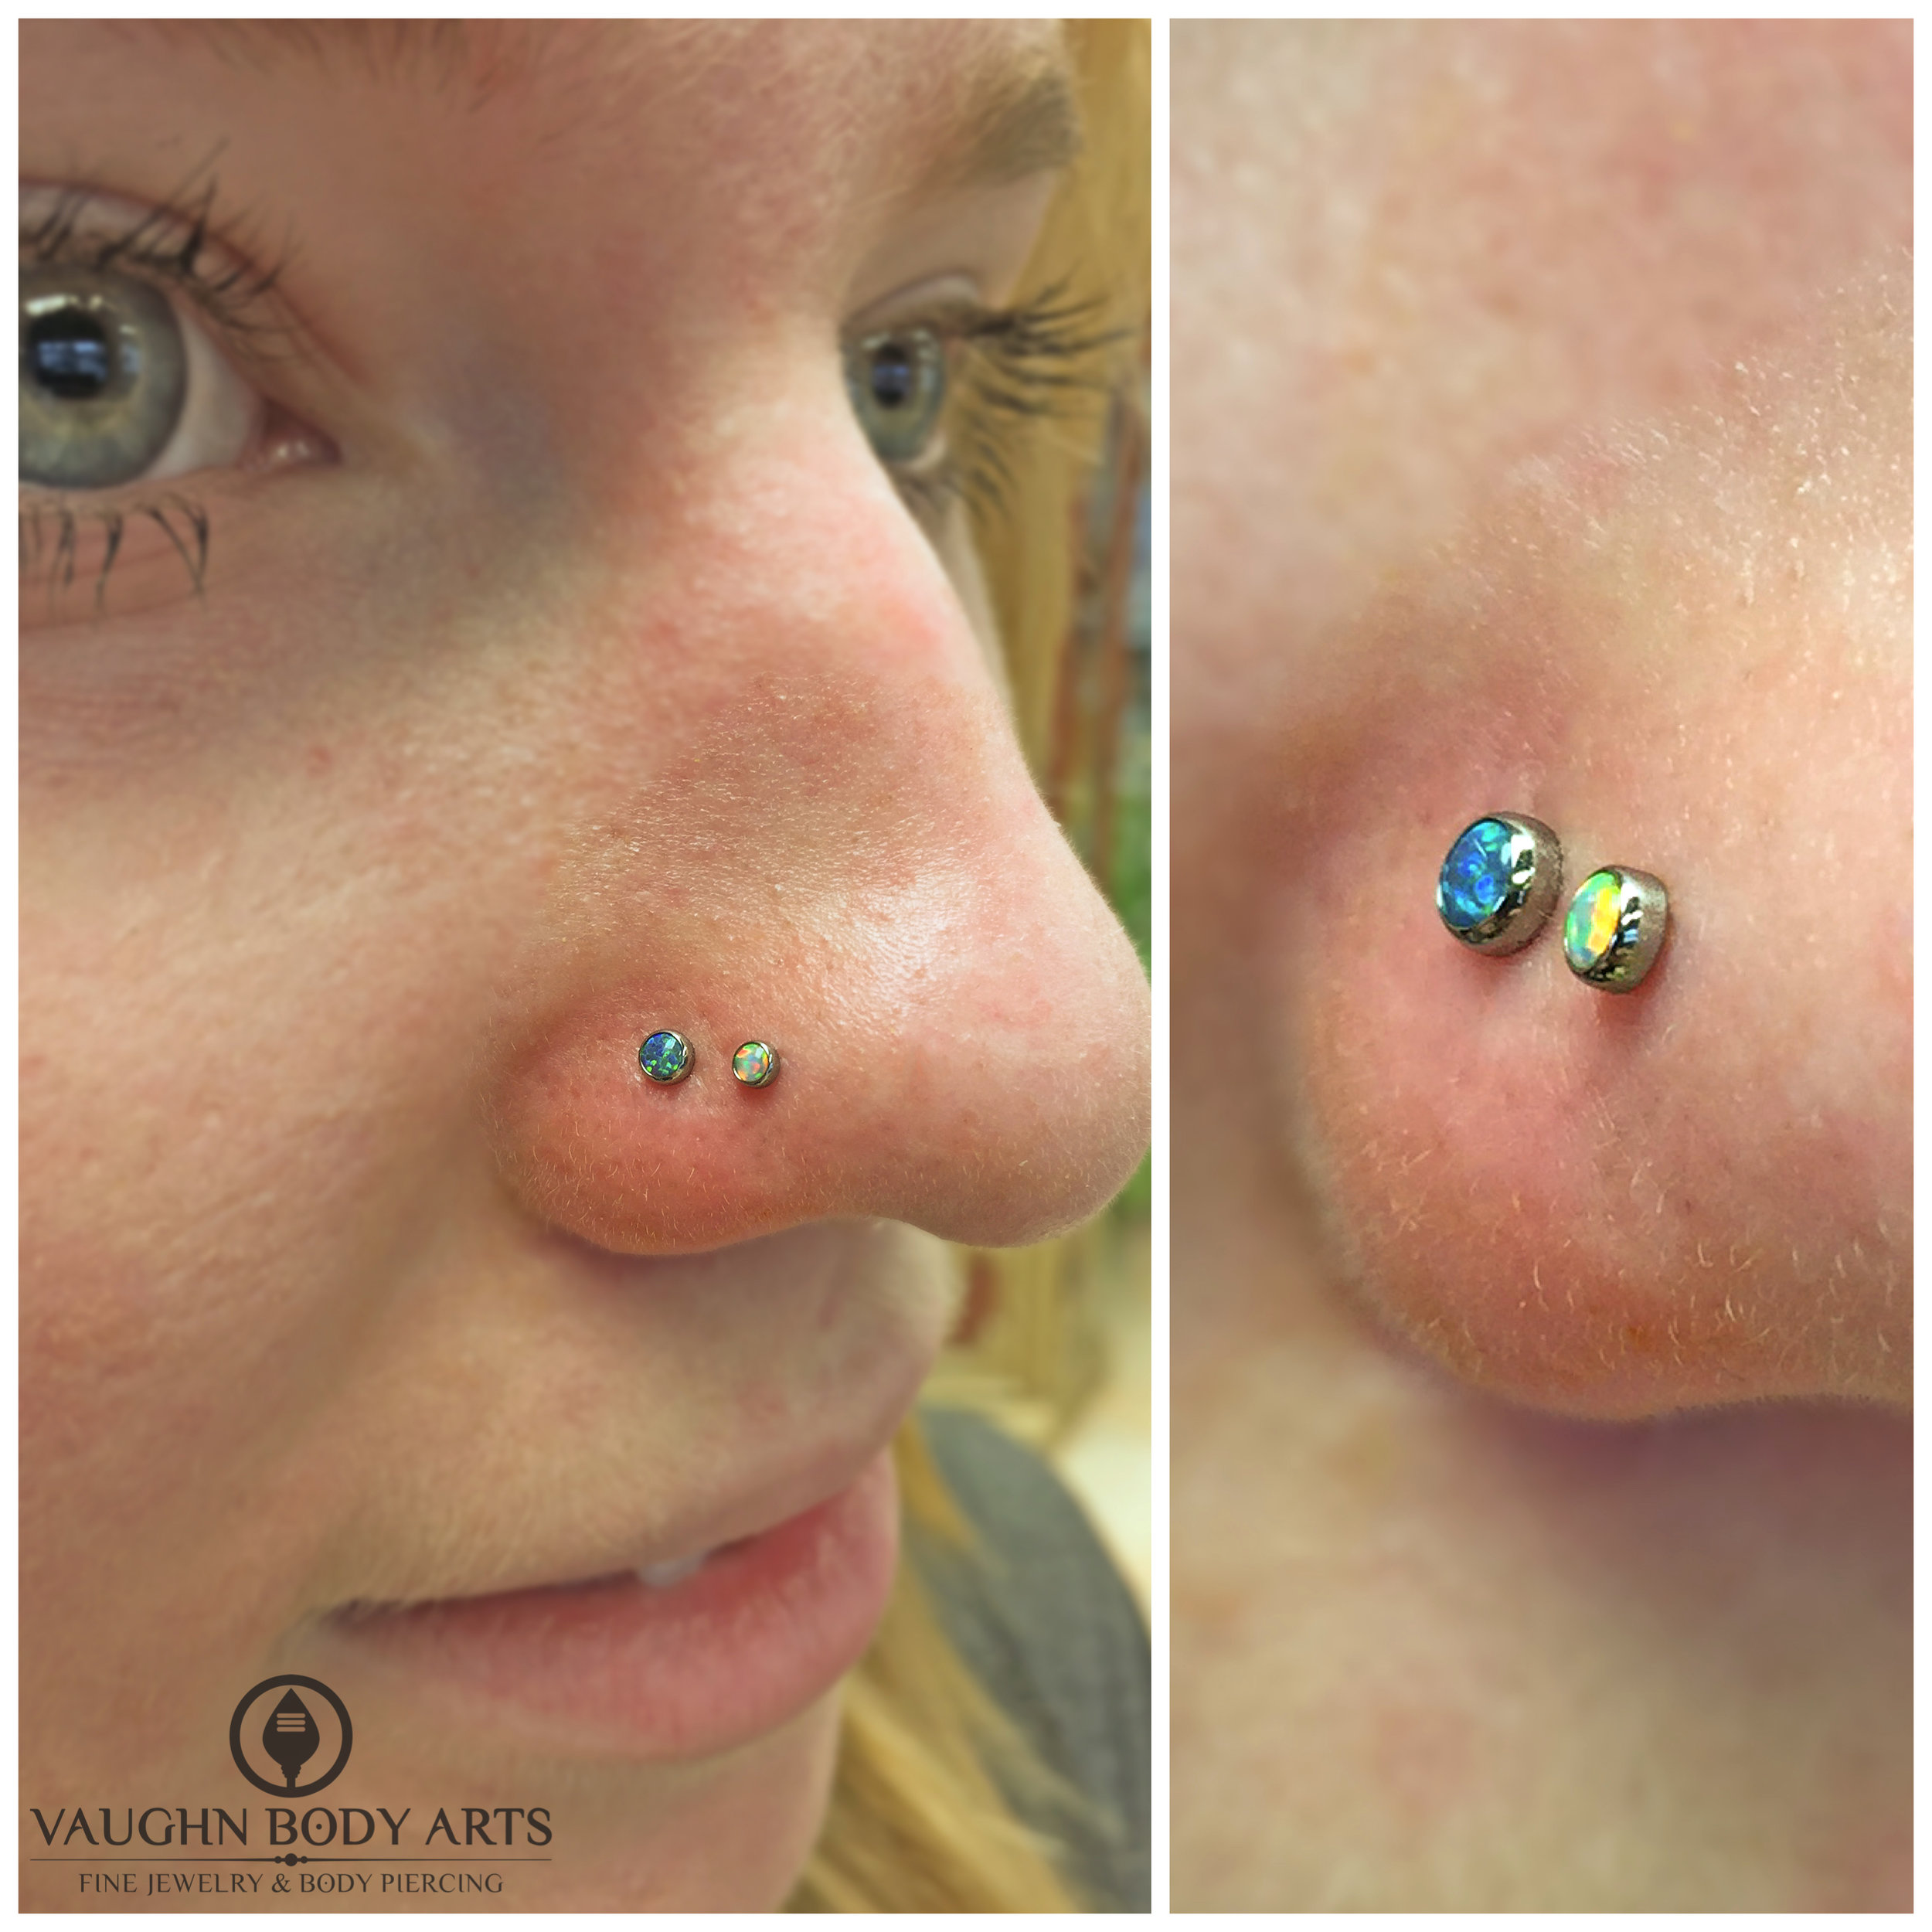 Double nostril piercings with titanium jewelry from NeoMetal.